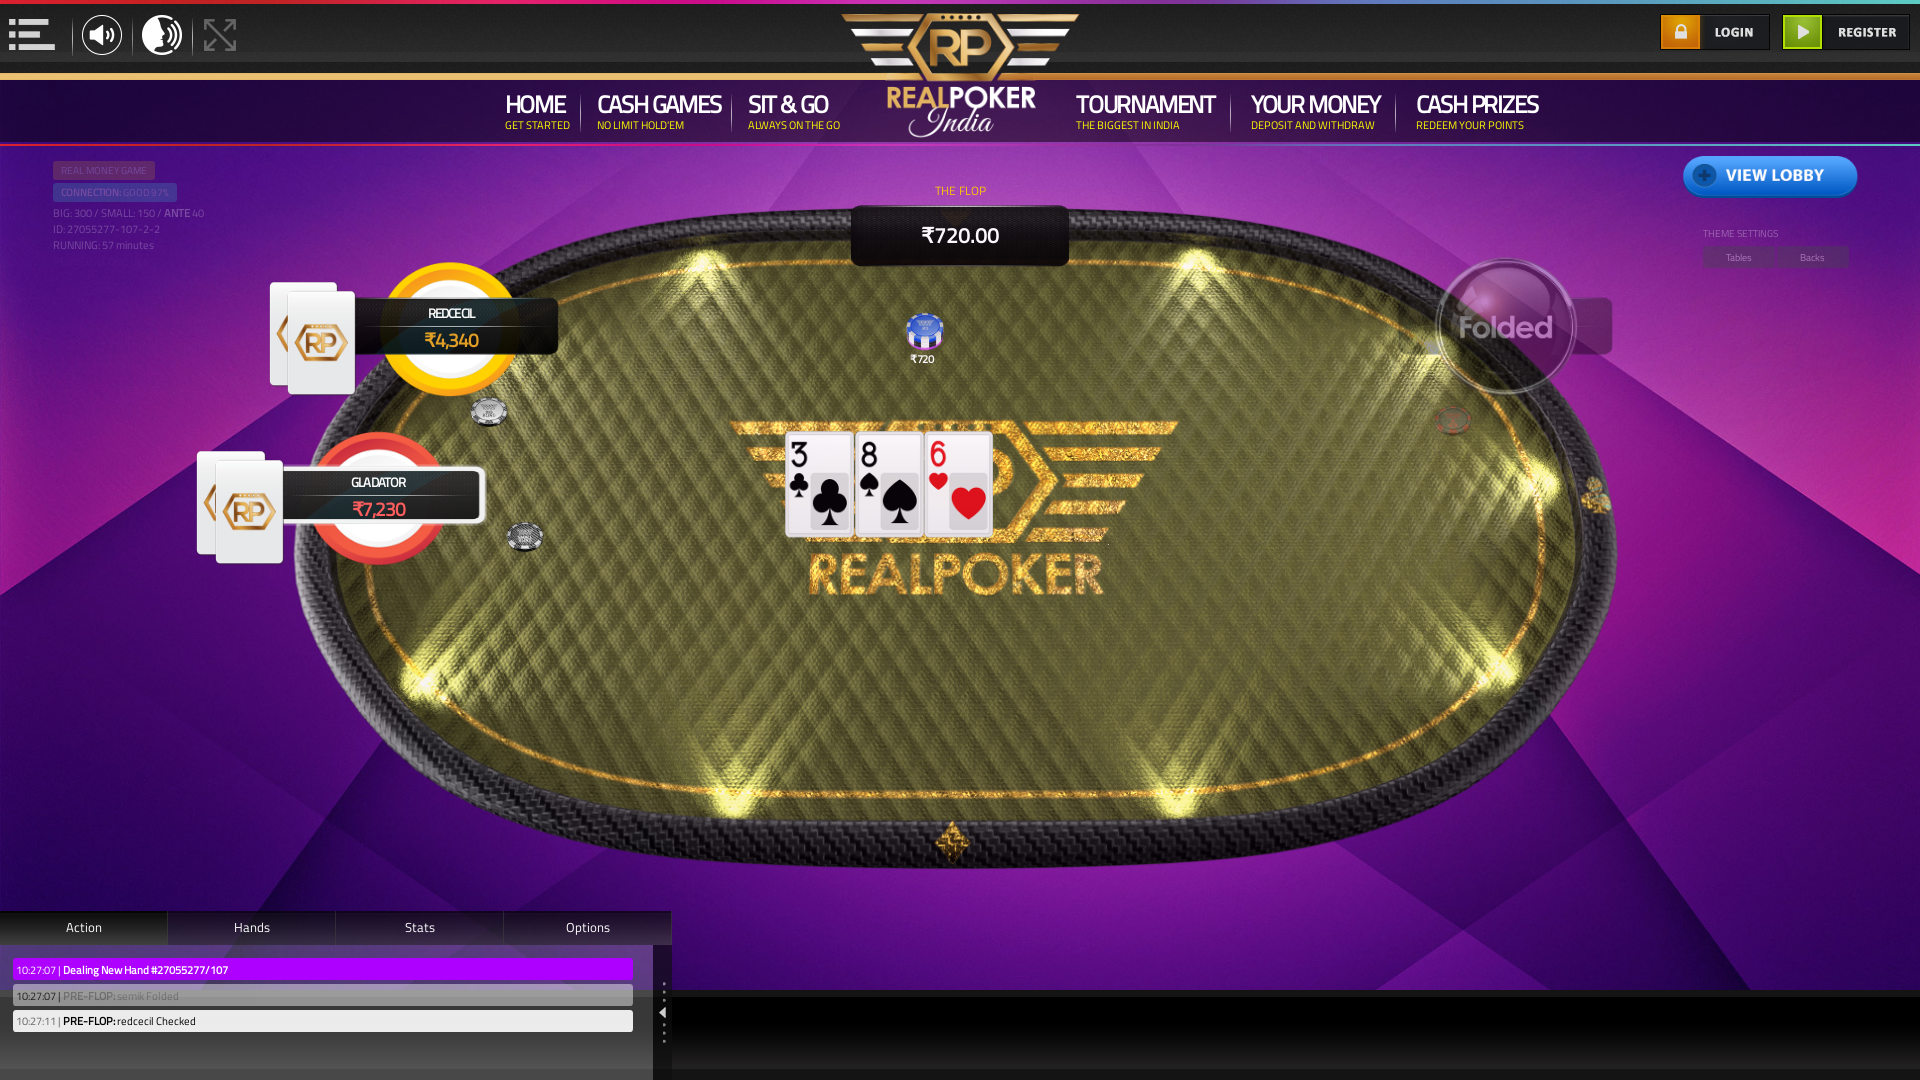 10 player texas holdem table at real poker with the table id 27055277